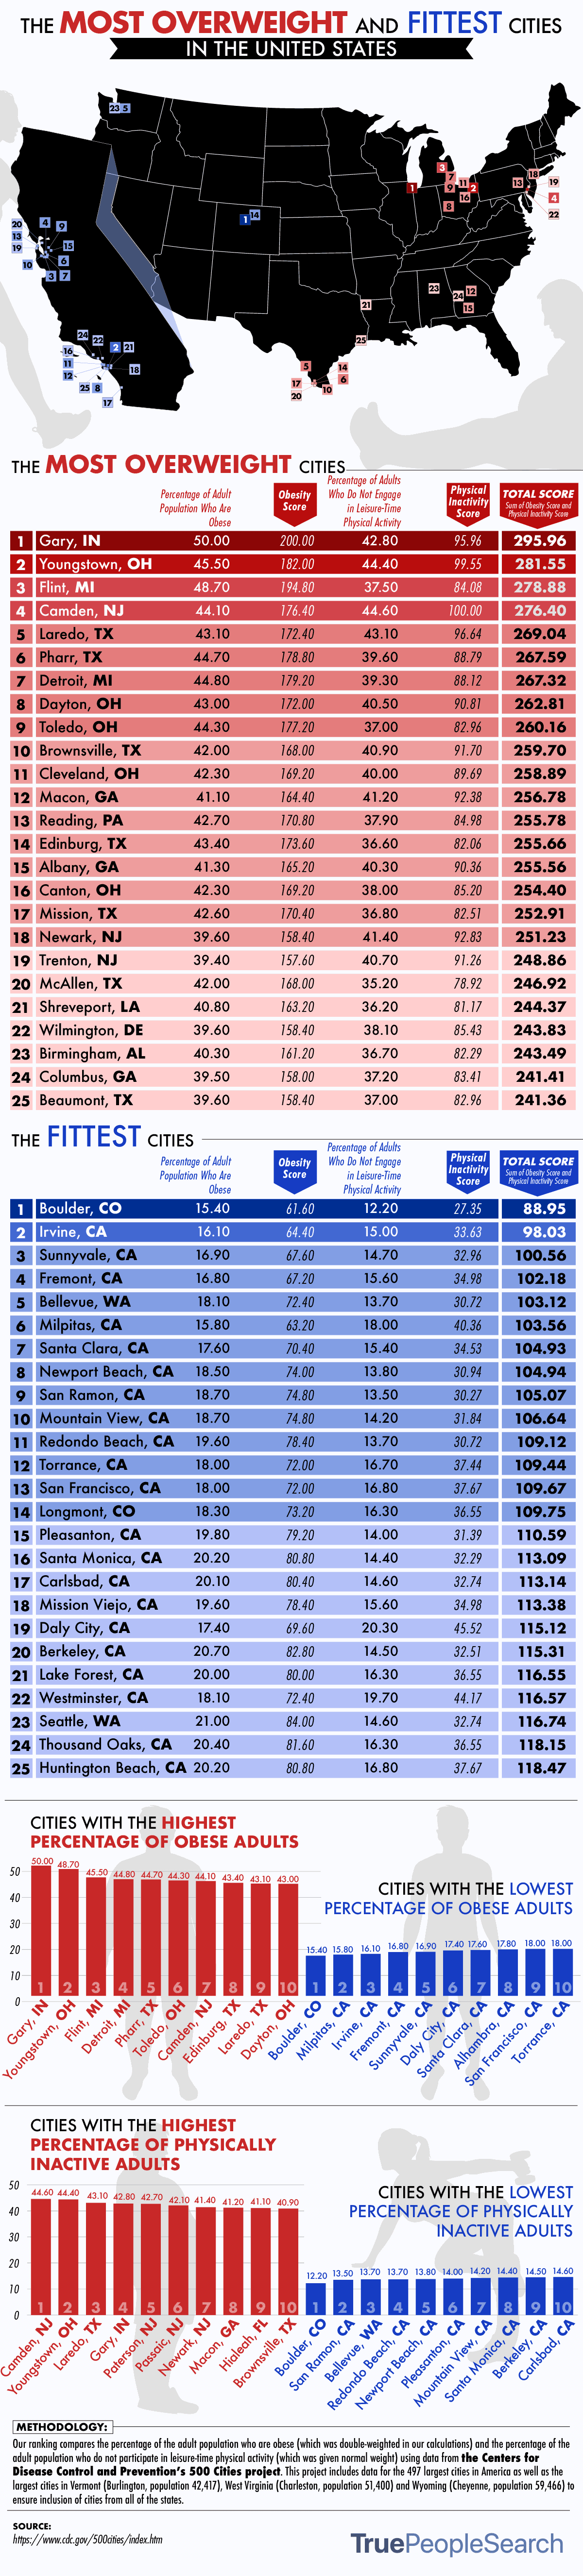 The Most Overweight cities in the United States